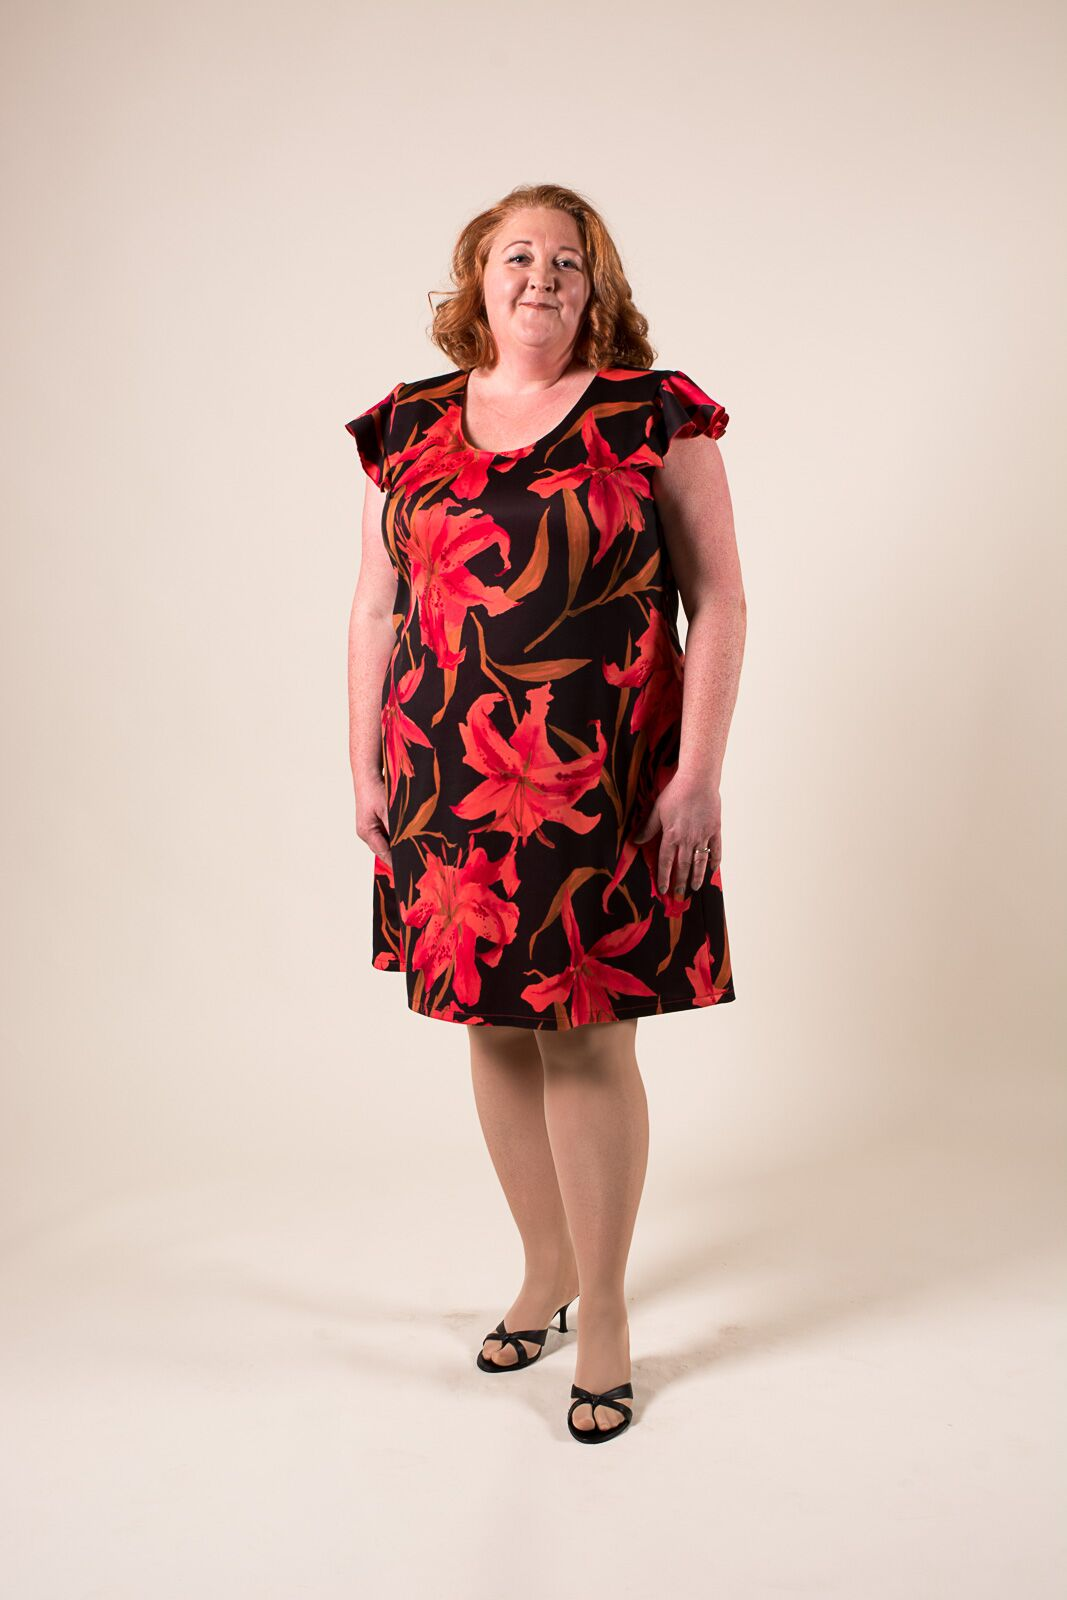 tracy in an everyday amazing shift dress